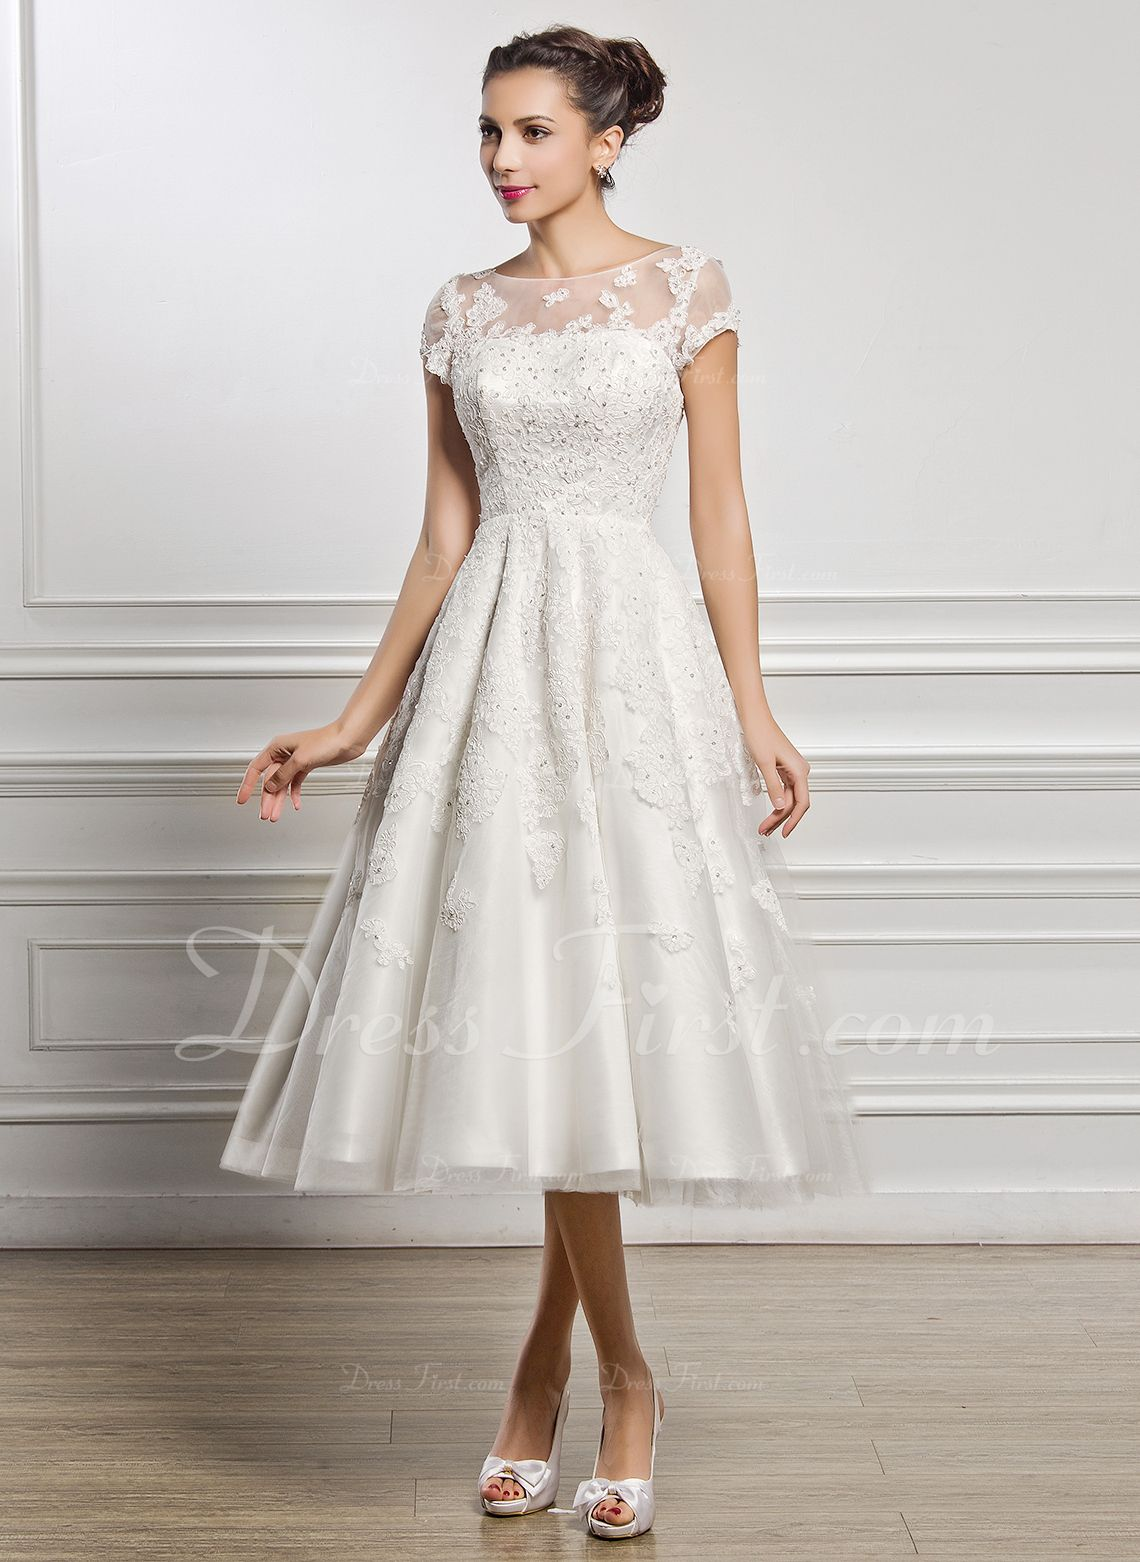 Aline illusion tealength tulle lace wedding dress with